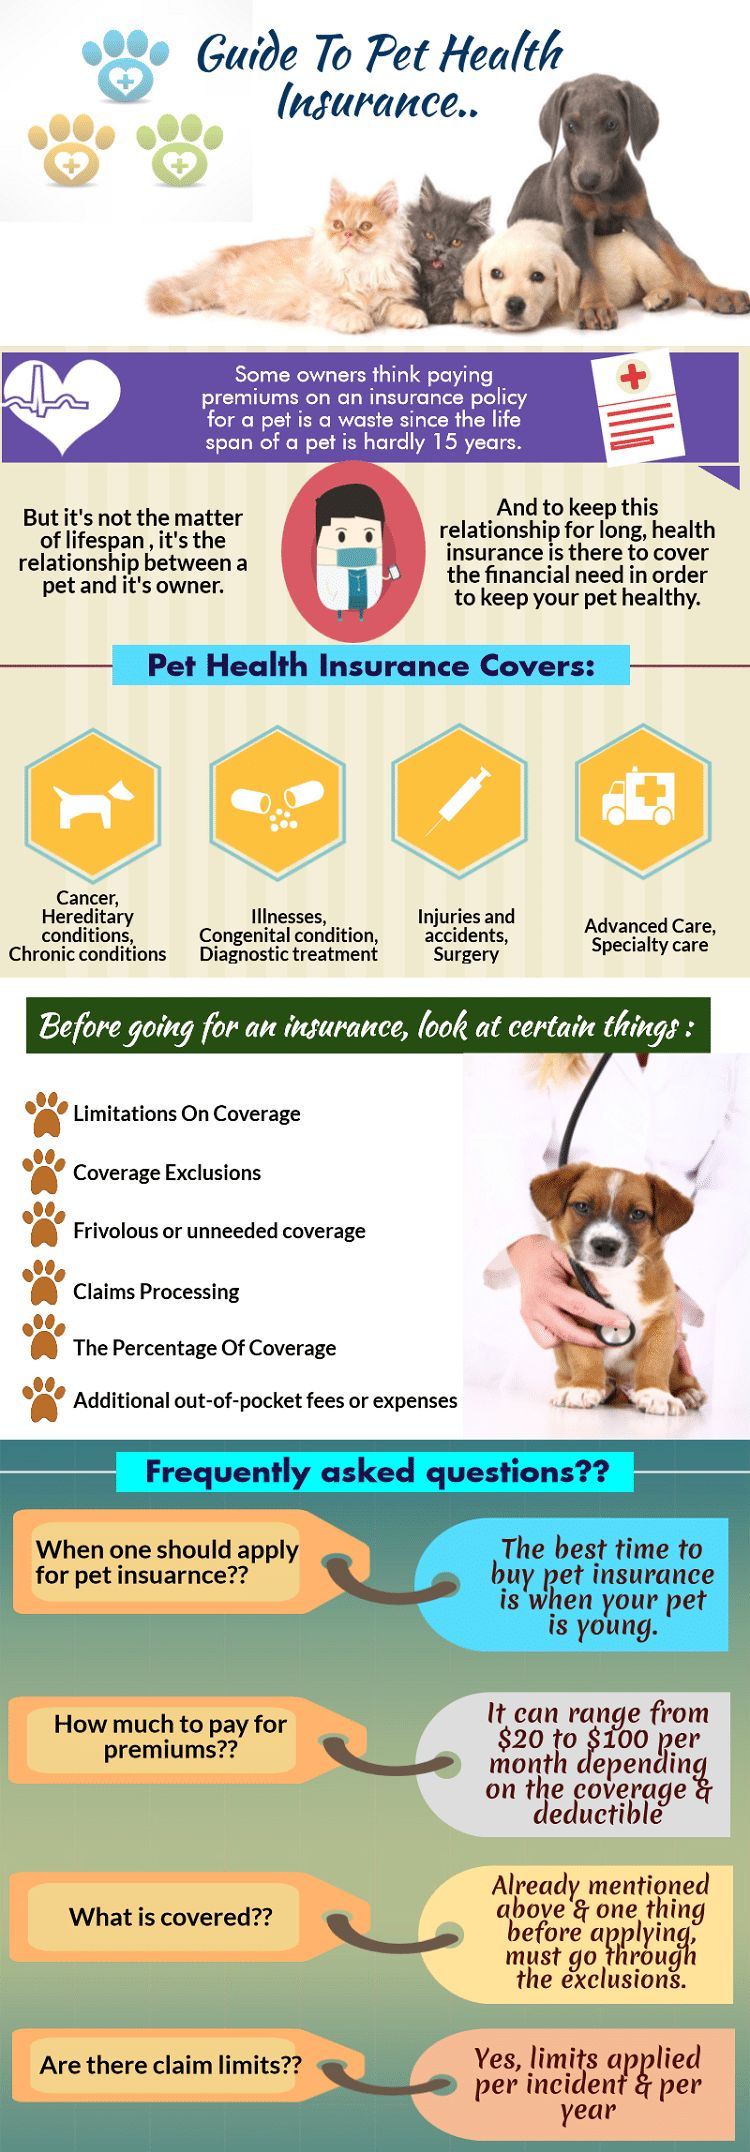 Cold laser therapy for dogs: pain free recovery treatment